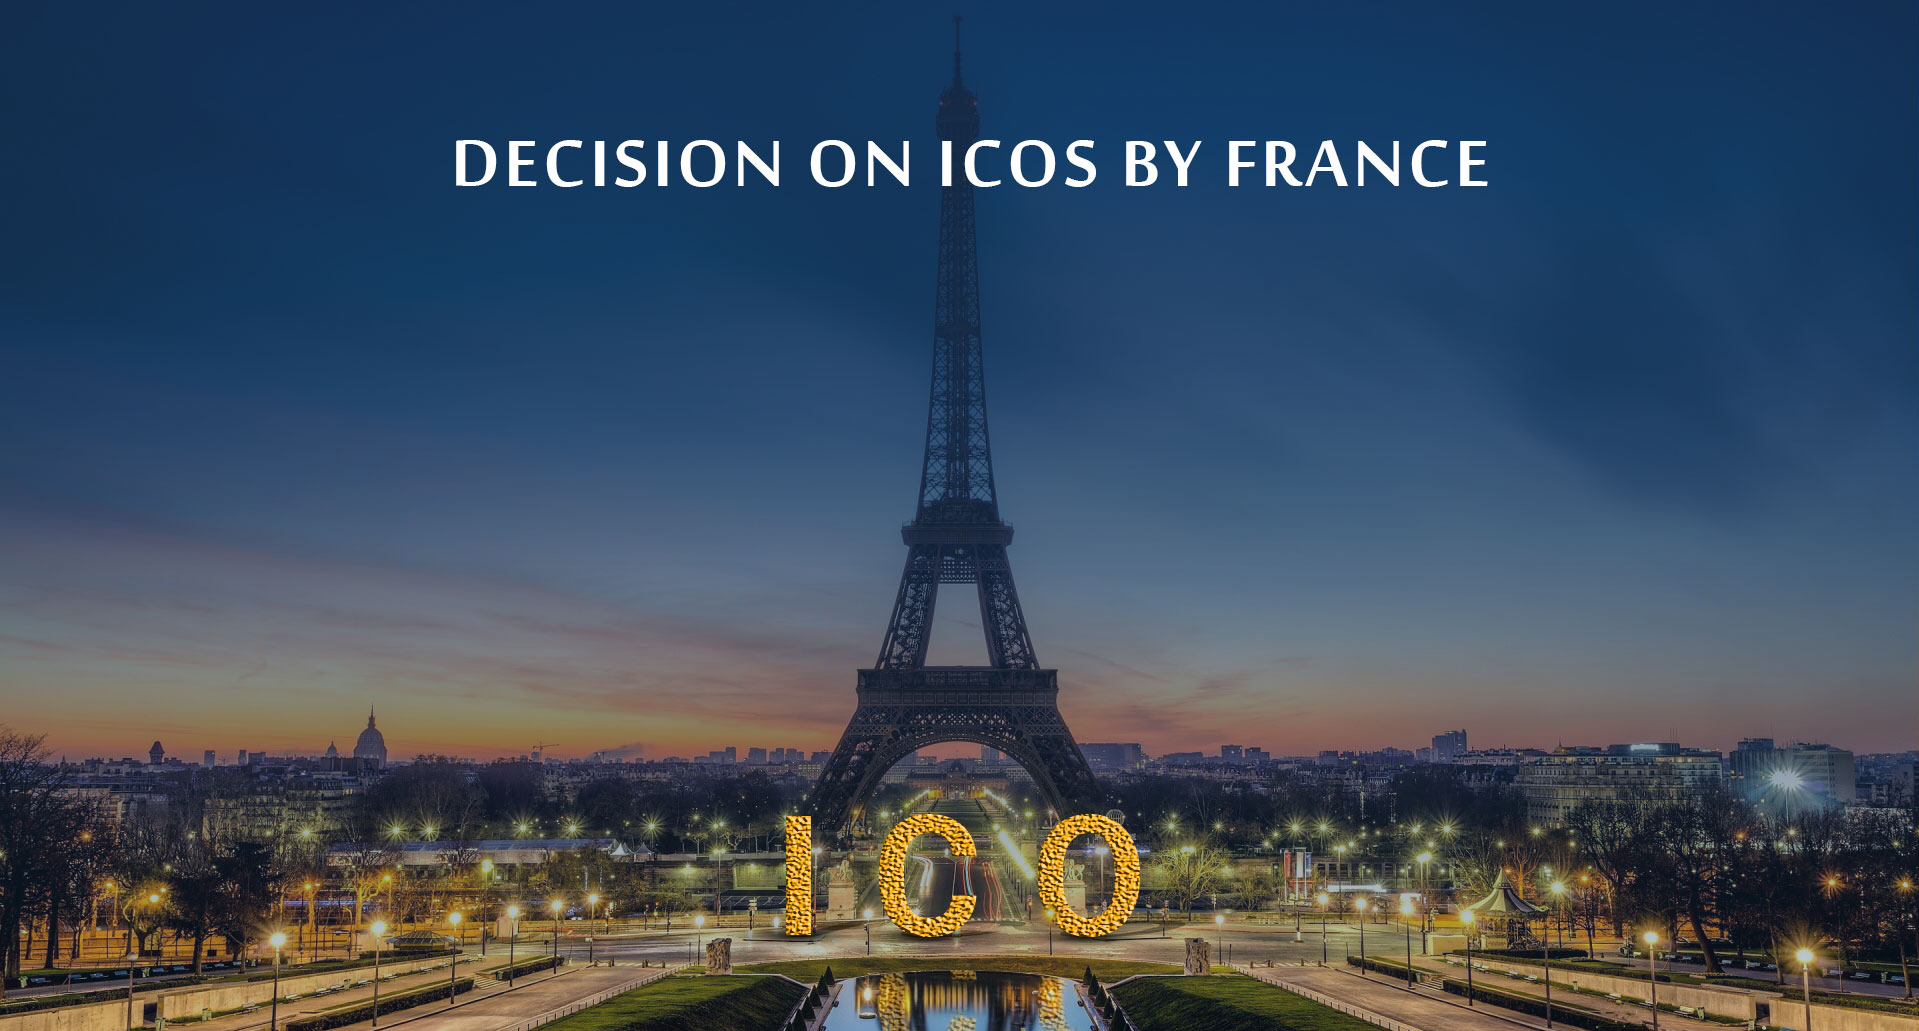 decision-on-icos-by-france.jpg